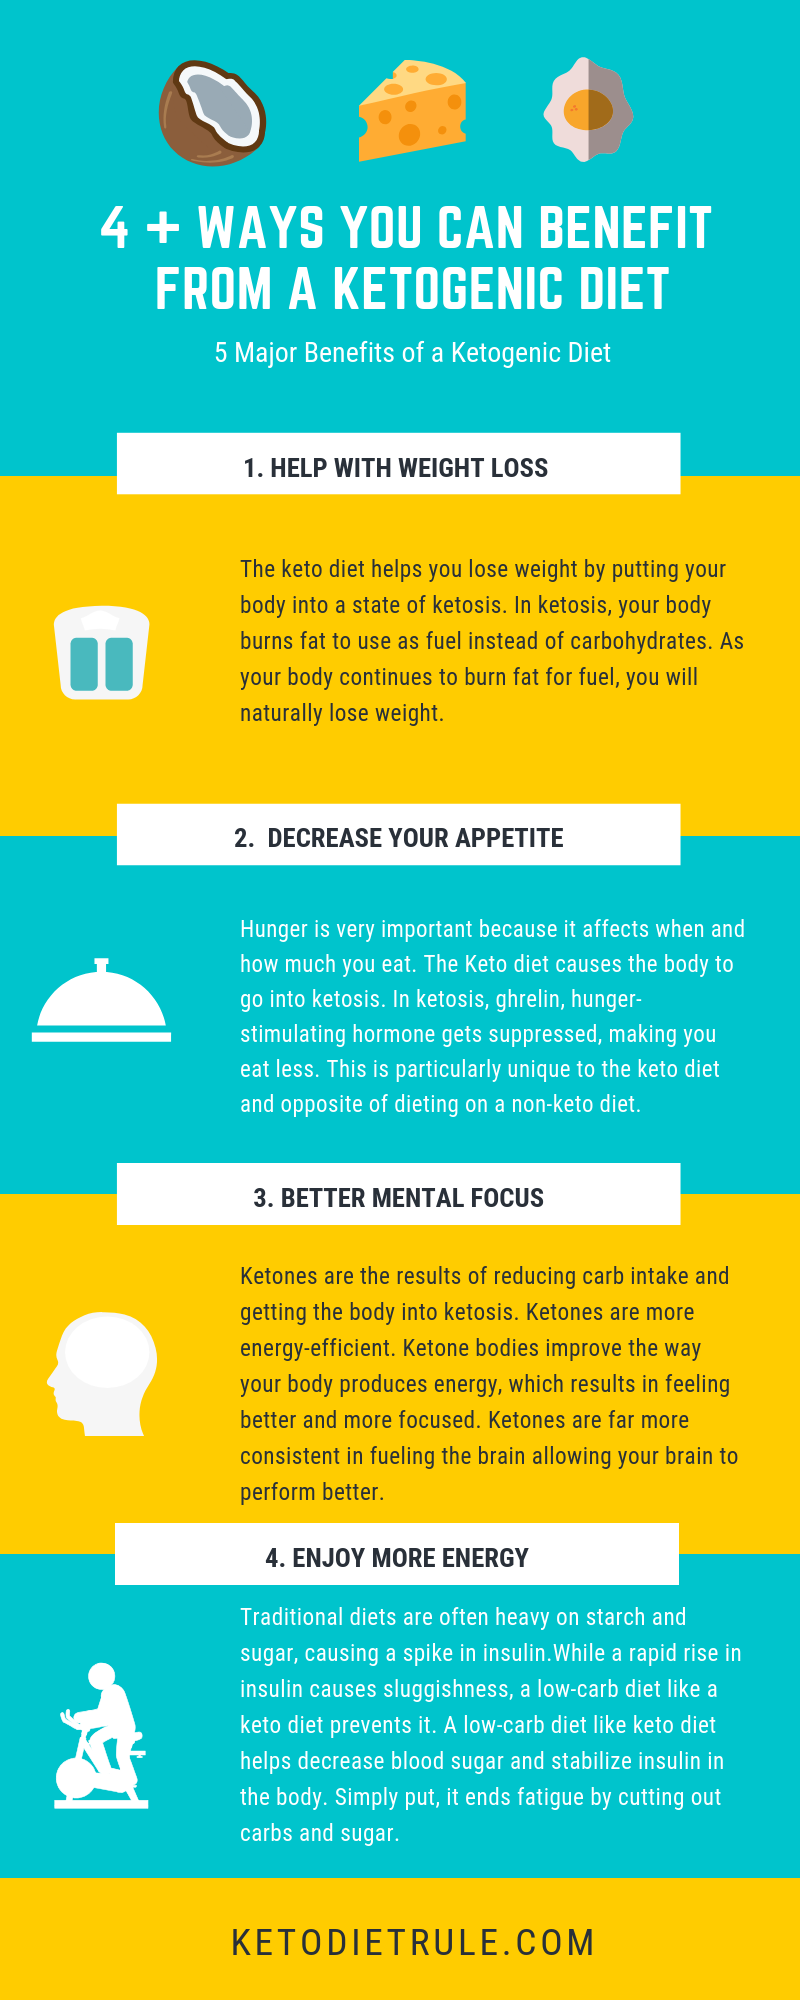 5 Benefits Of A Ketogenic Diet